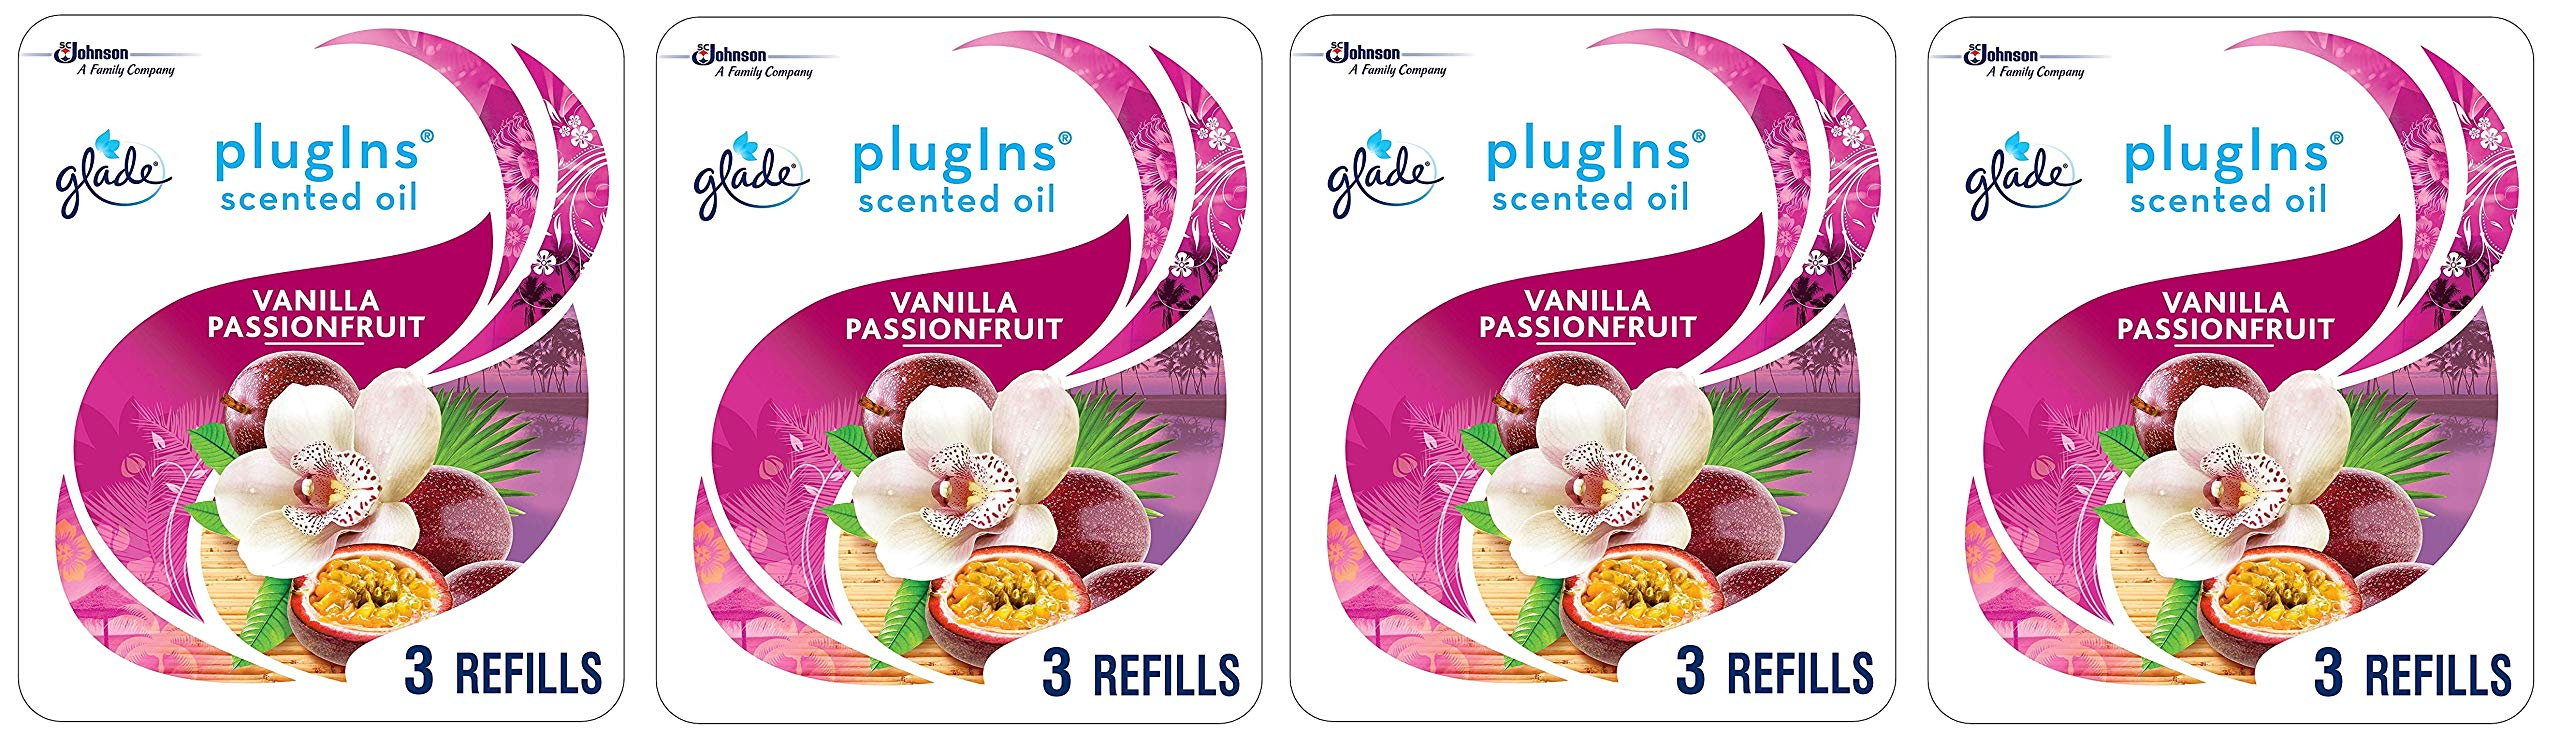 Glade PlugIns Scented Oil Refill Vanilla Passion Fruit, Essential Oil Infused Wall Plug In, Up to 50 Days of Continuous Fragrance, 2.01 FL OZ, Pack of 3 (Packaging May Vary) (Fоur Расk)